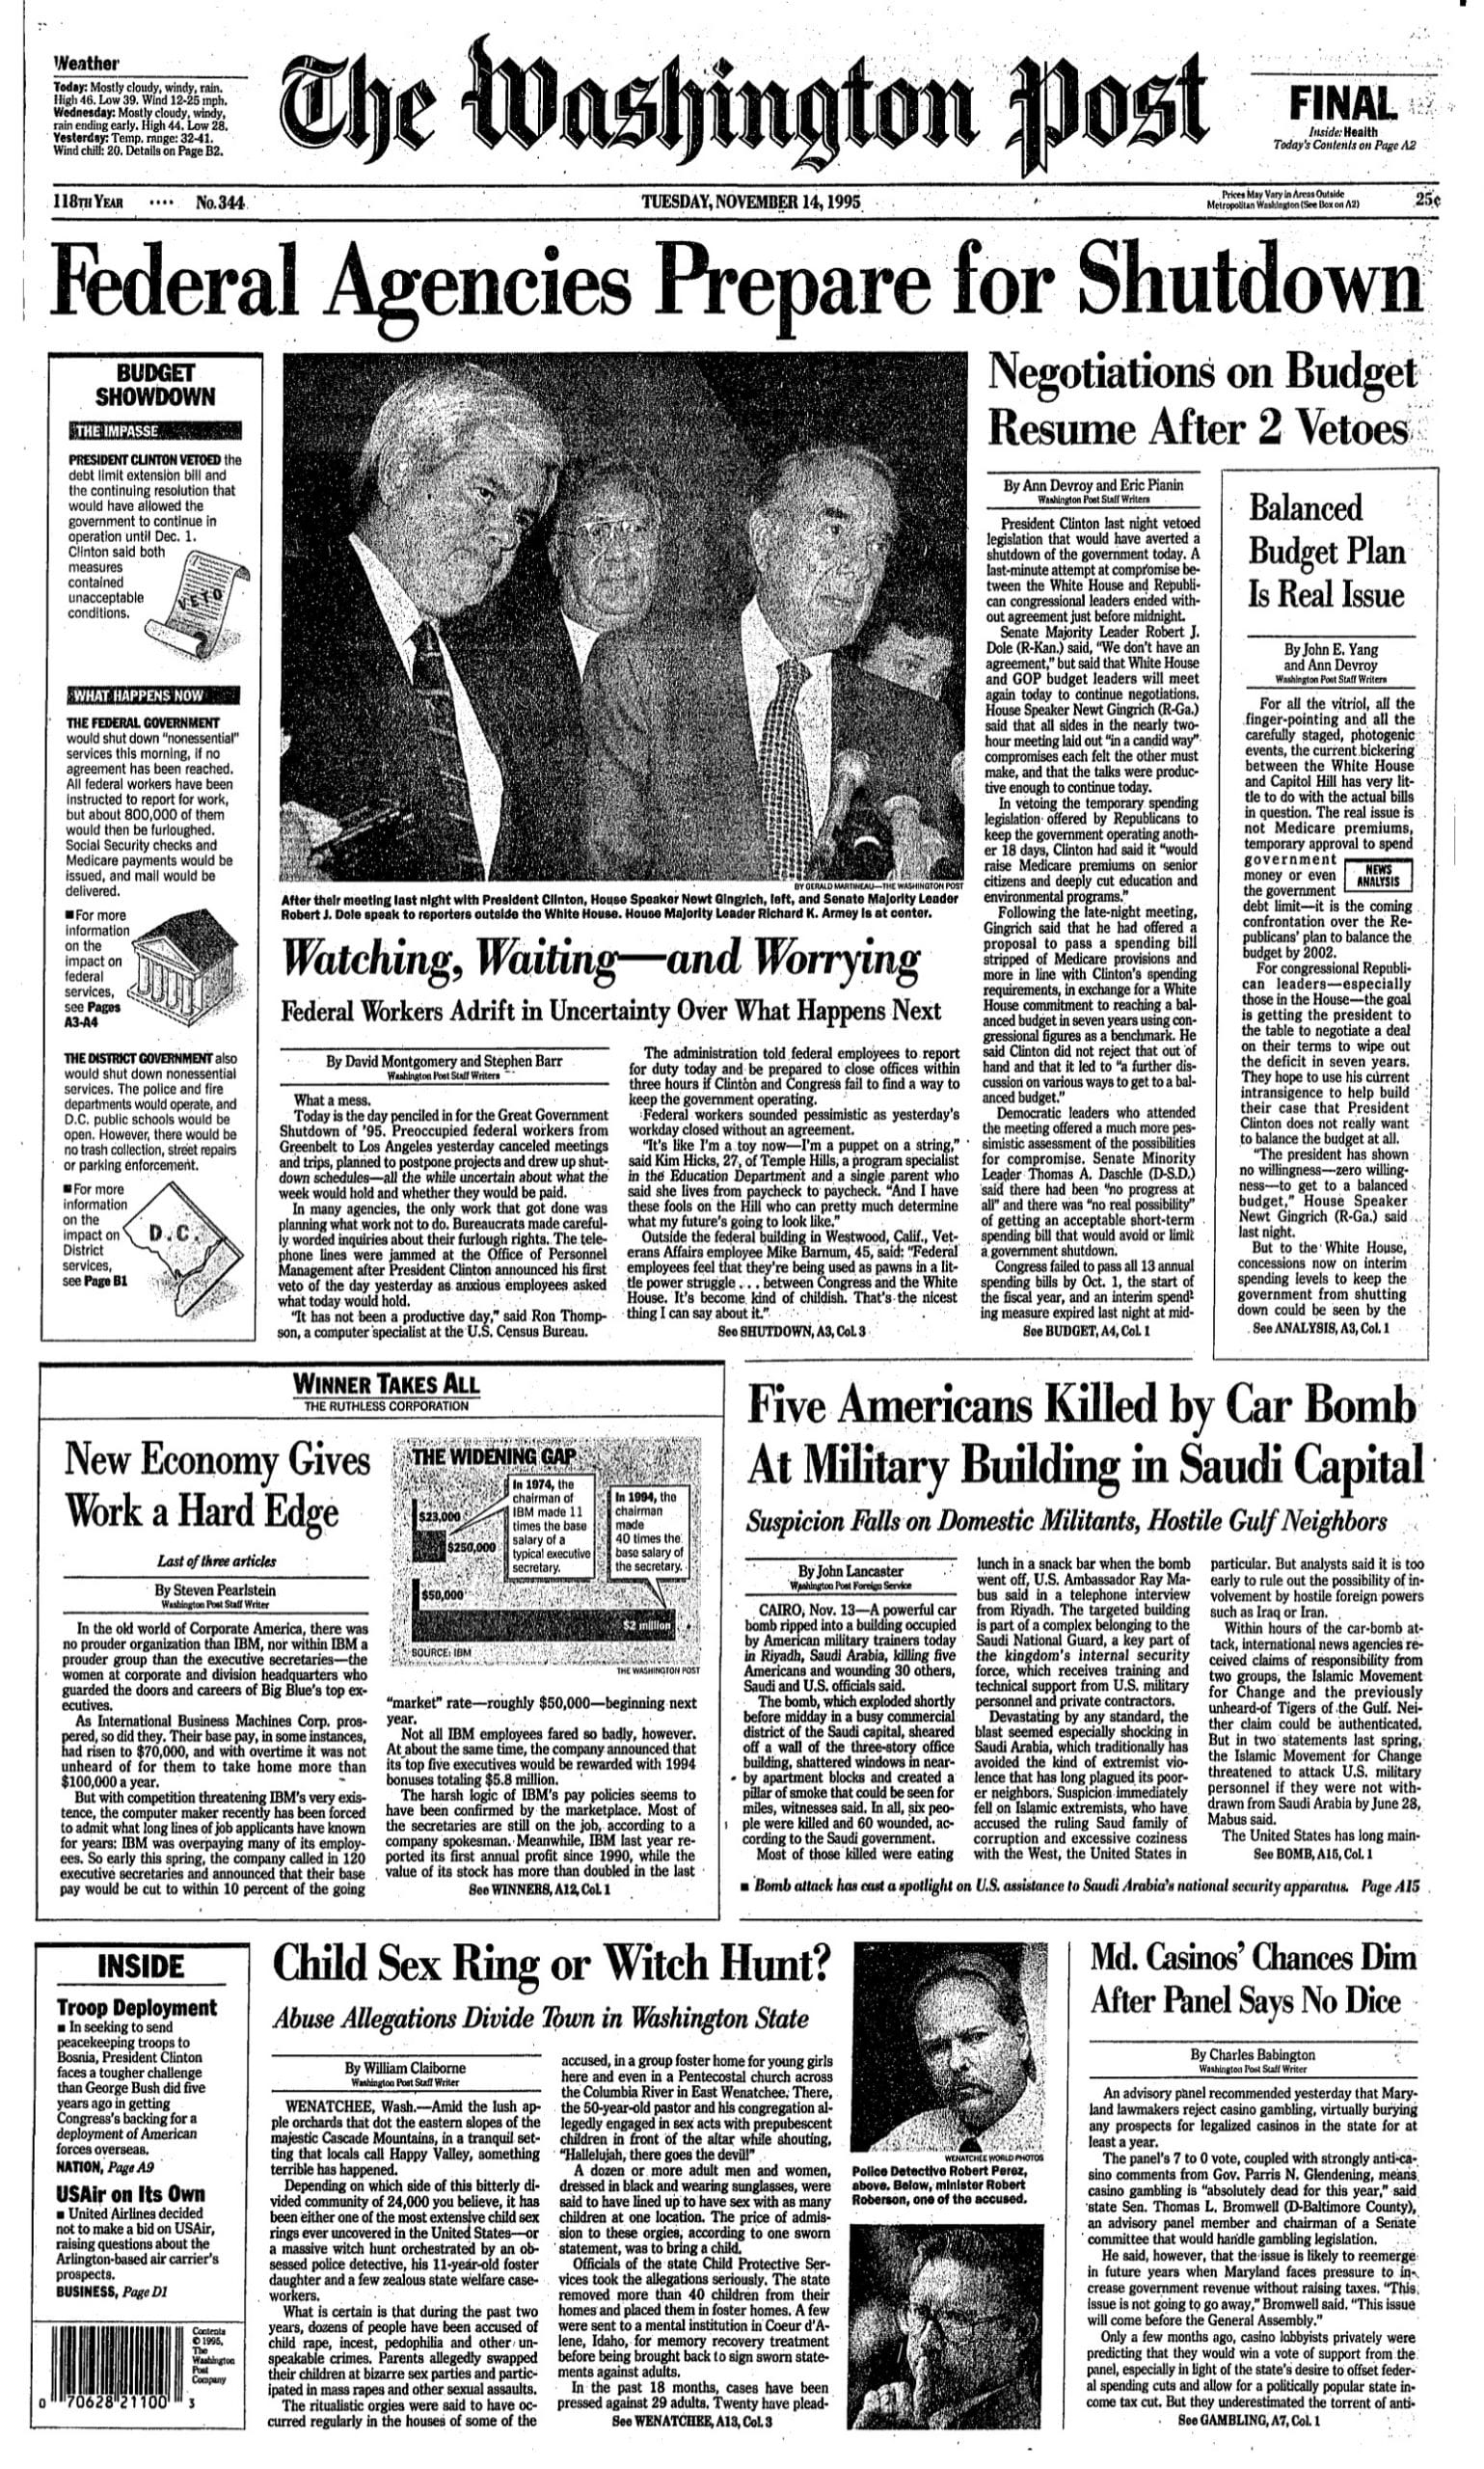 Washington Post front page - 11/14/95